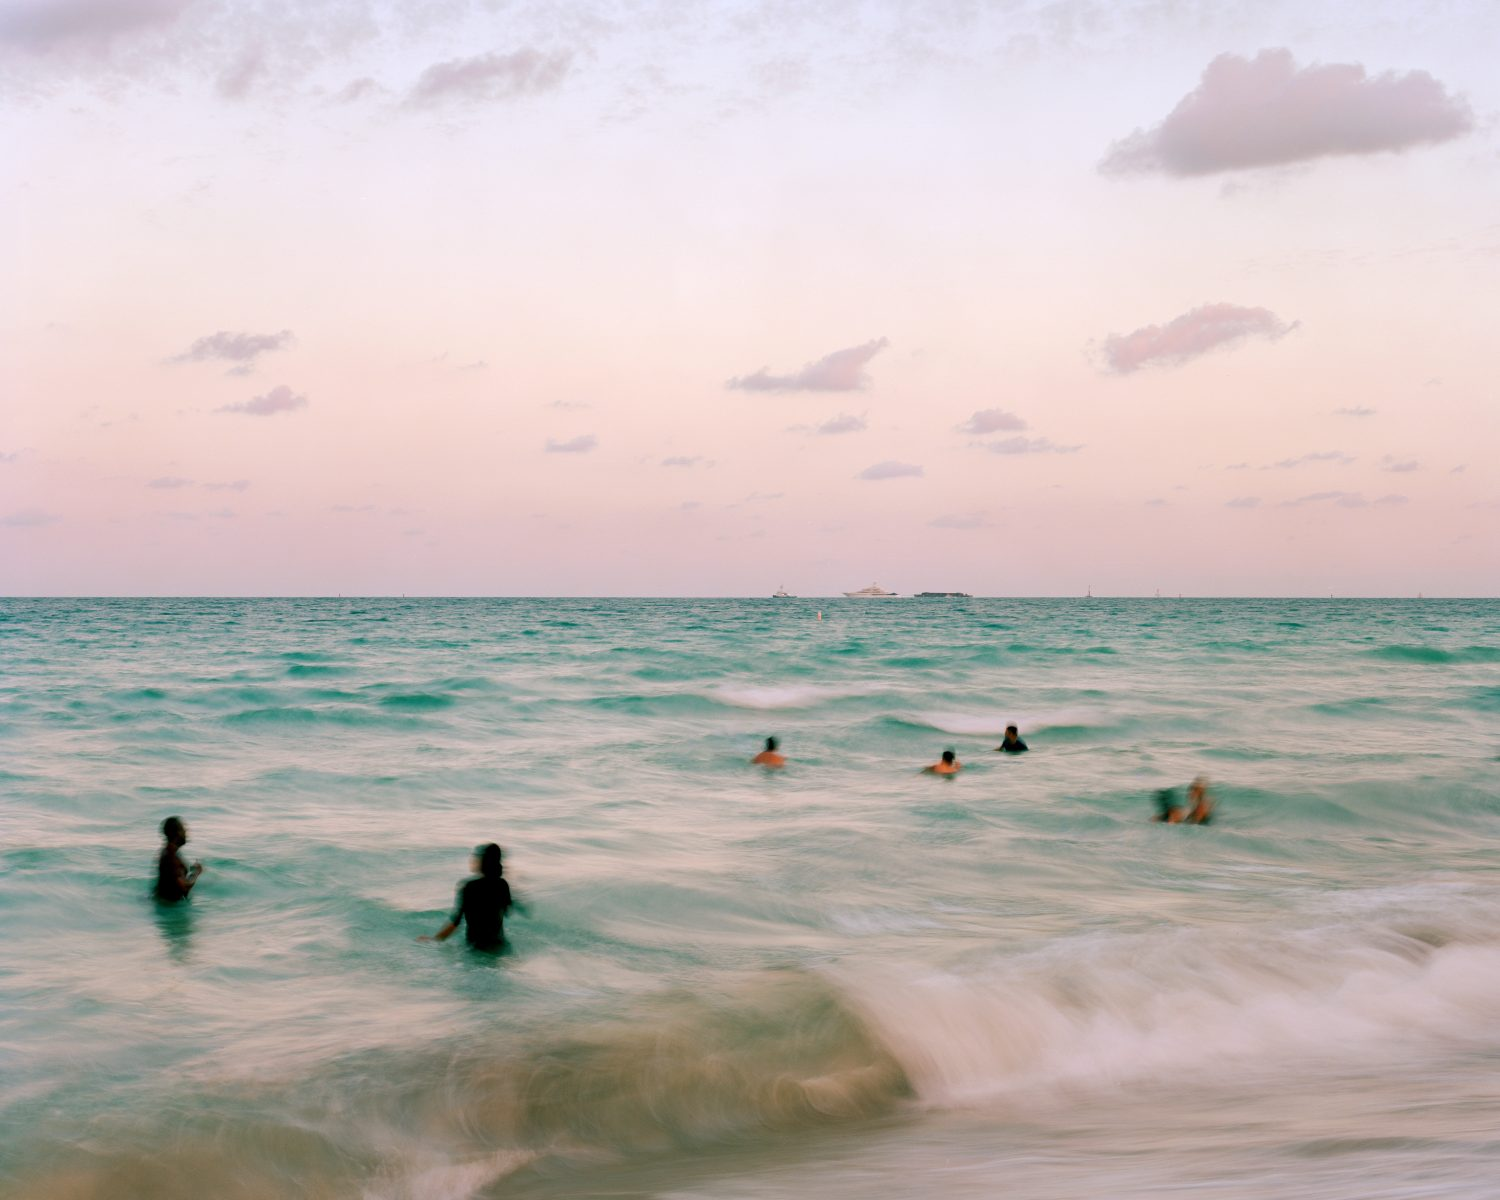 Color Photo, Florida, Climate Change, Bryan Thomas The Sea in The Darkness Calls